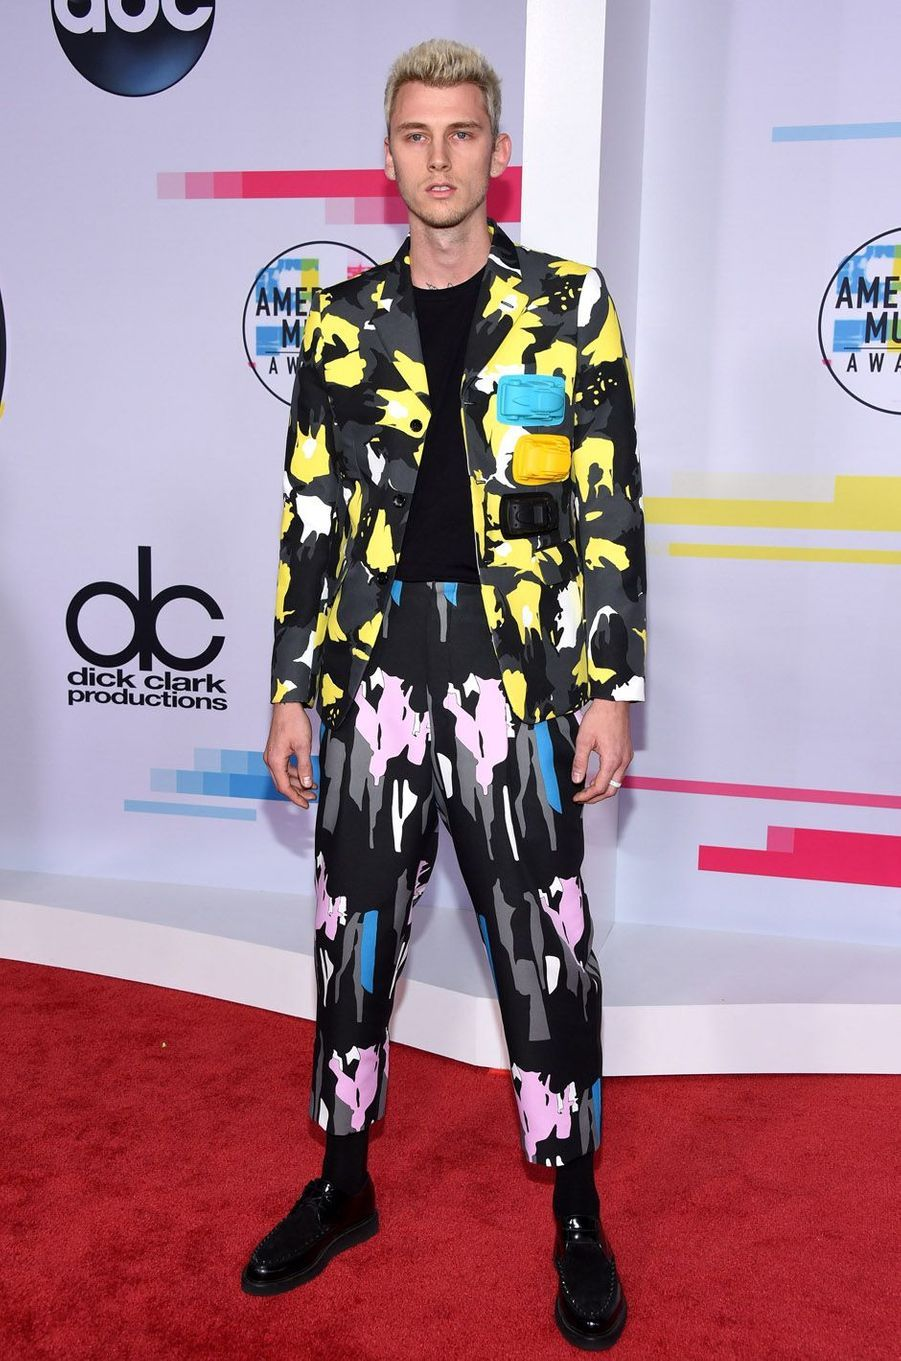 Machine Gun Kelly aux American Music Awards, le 19 novembre 2017 à Los Angeles.